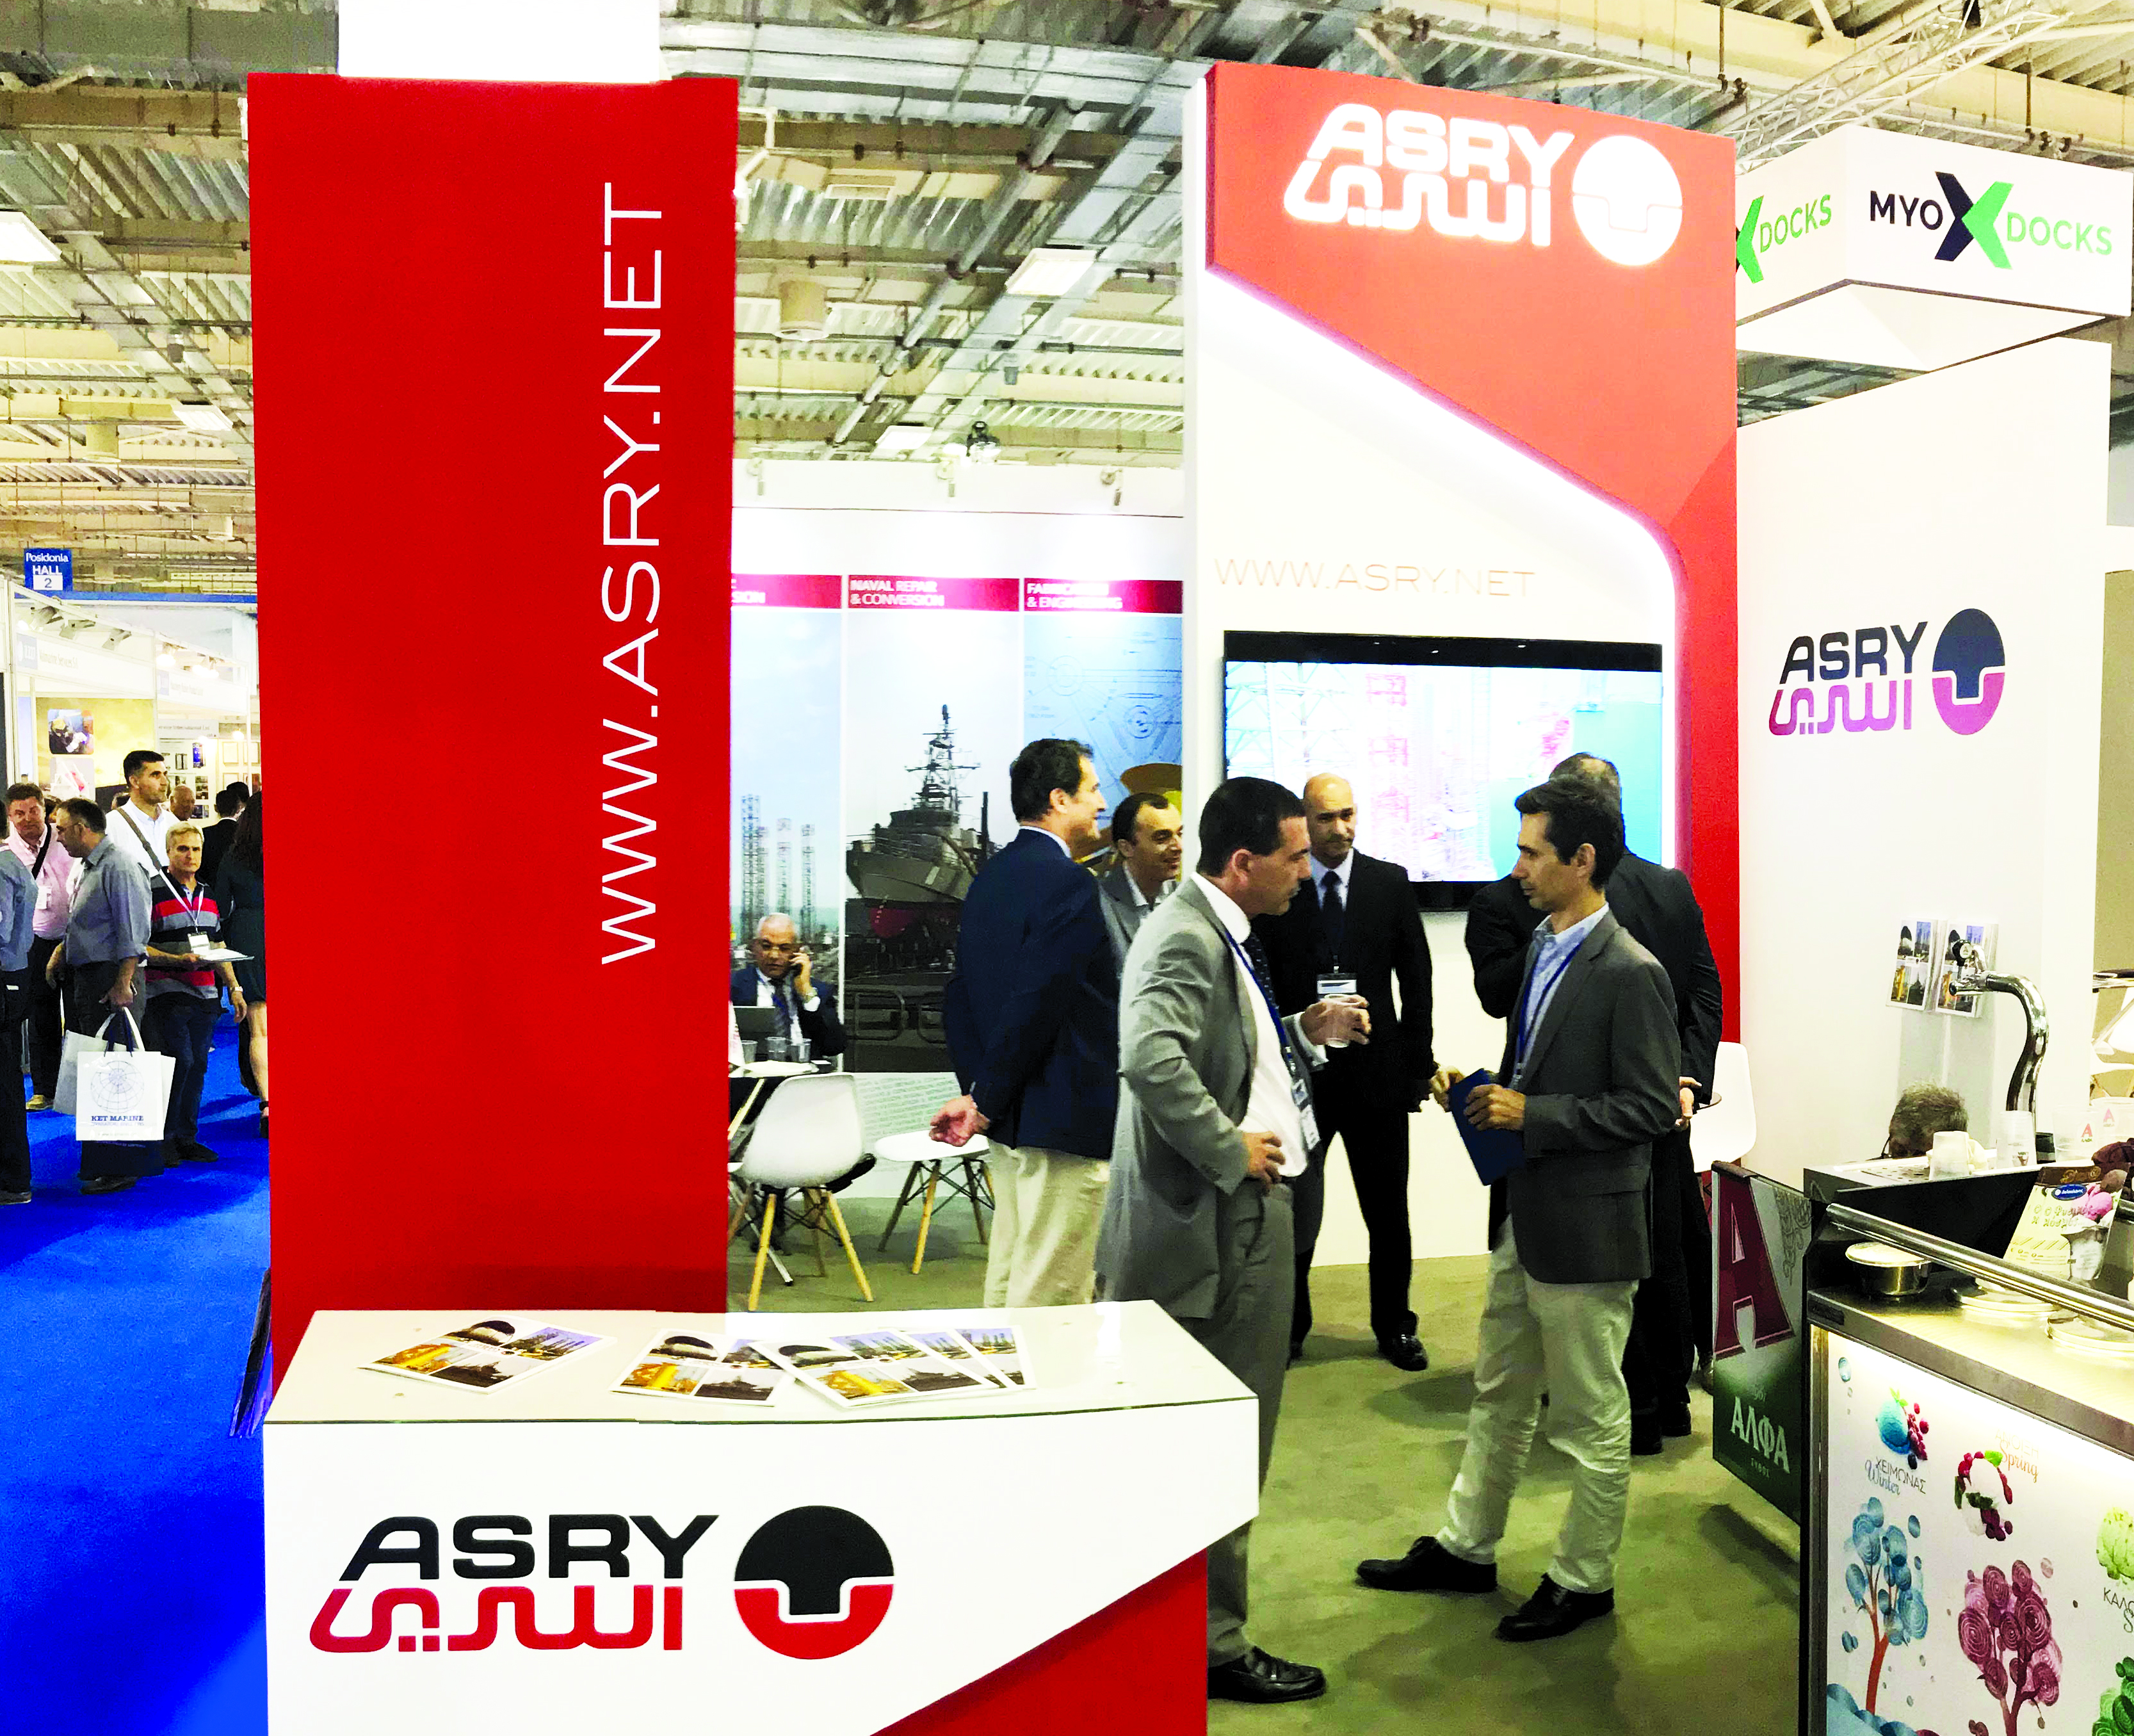 Asry stall at the event